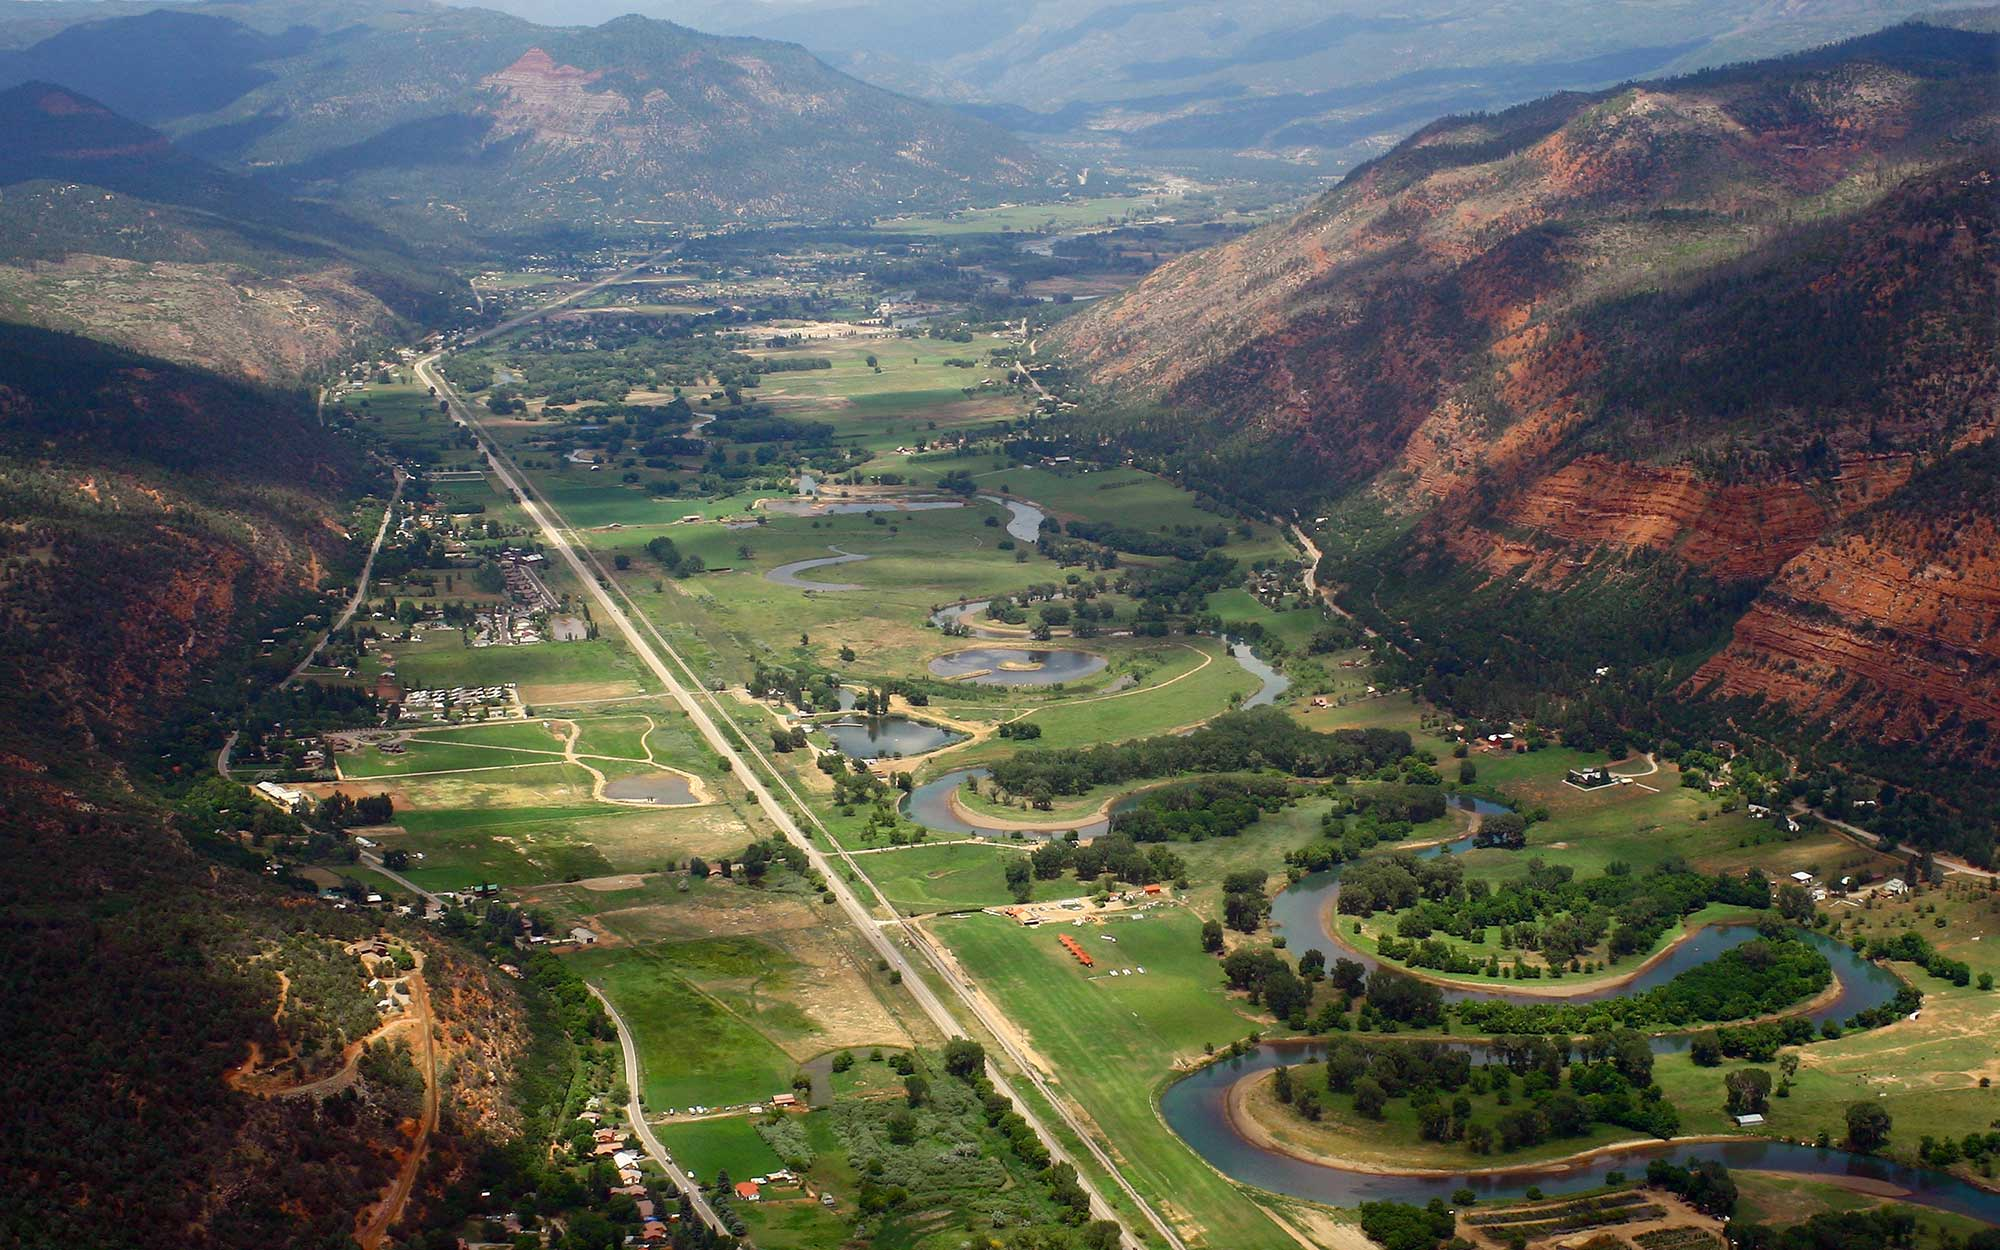 Aerial view of Durango, Colorado